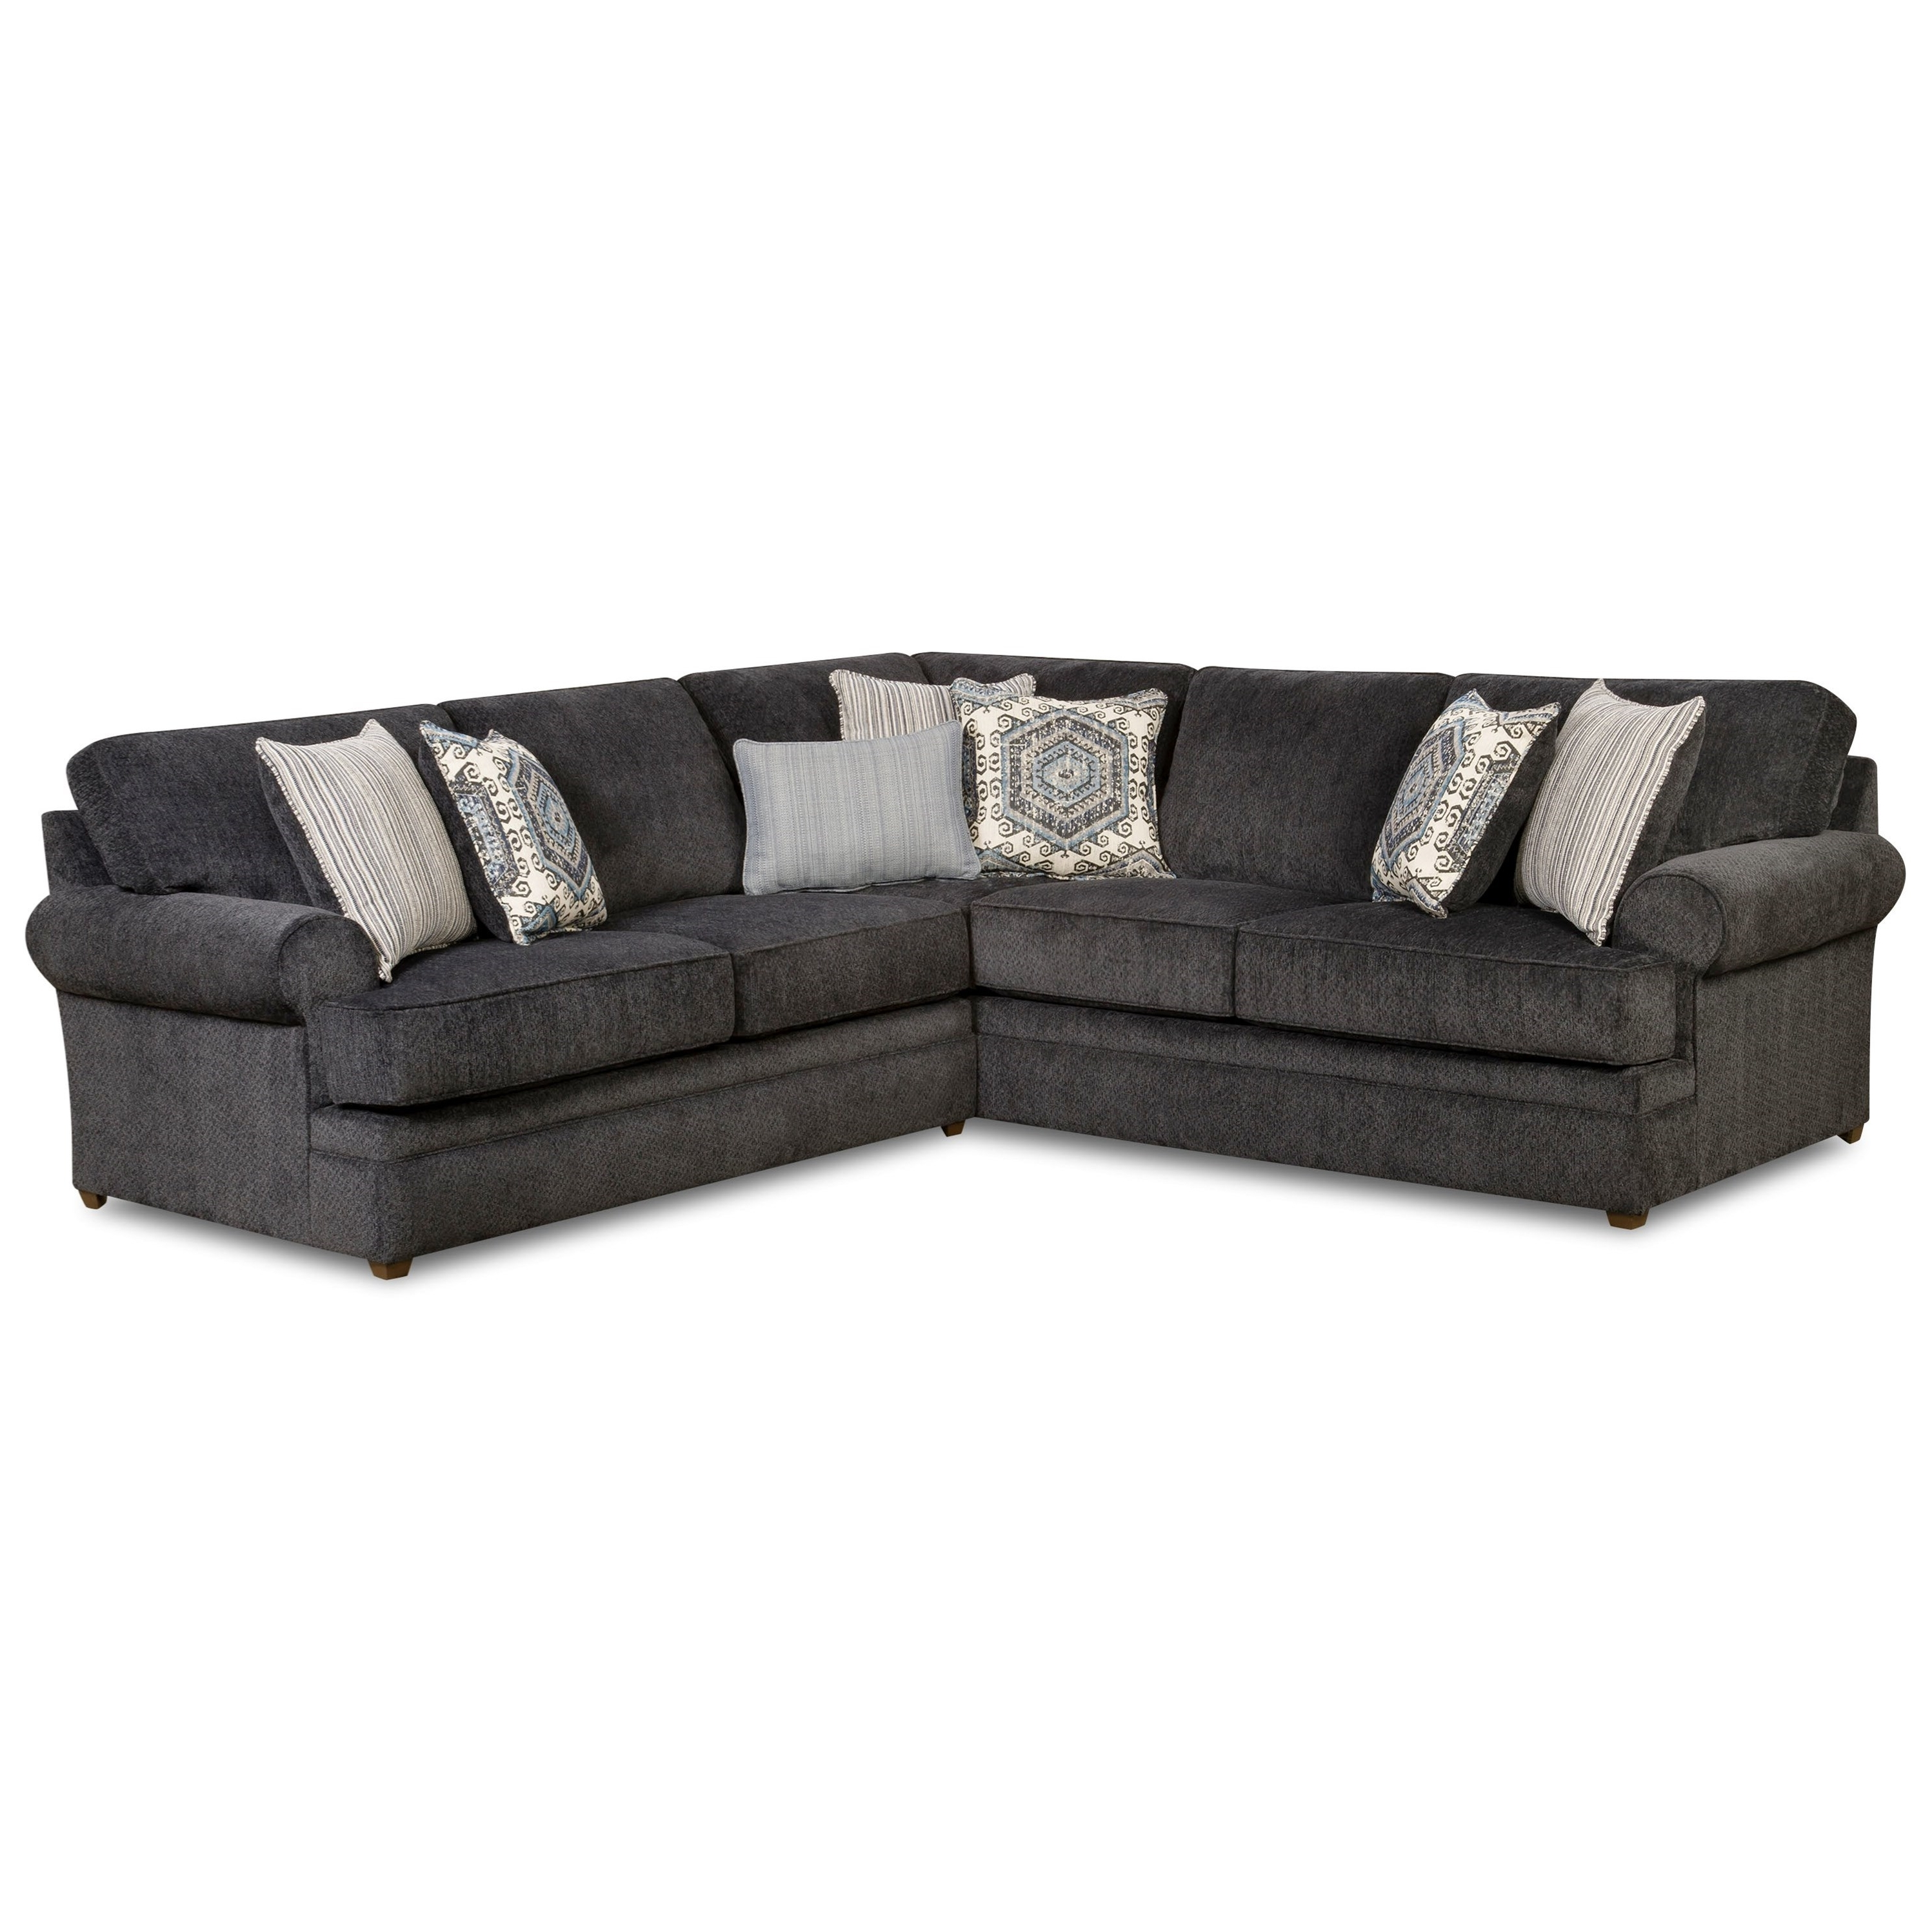 Sectional Sofas At Birmingham Al Regarding Well Liked Simmons Upholstery 8530 Br Transitional Sectional Sofa With Rolled (View 2 of 15)